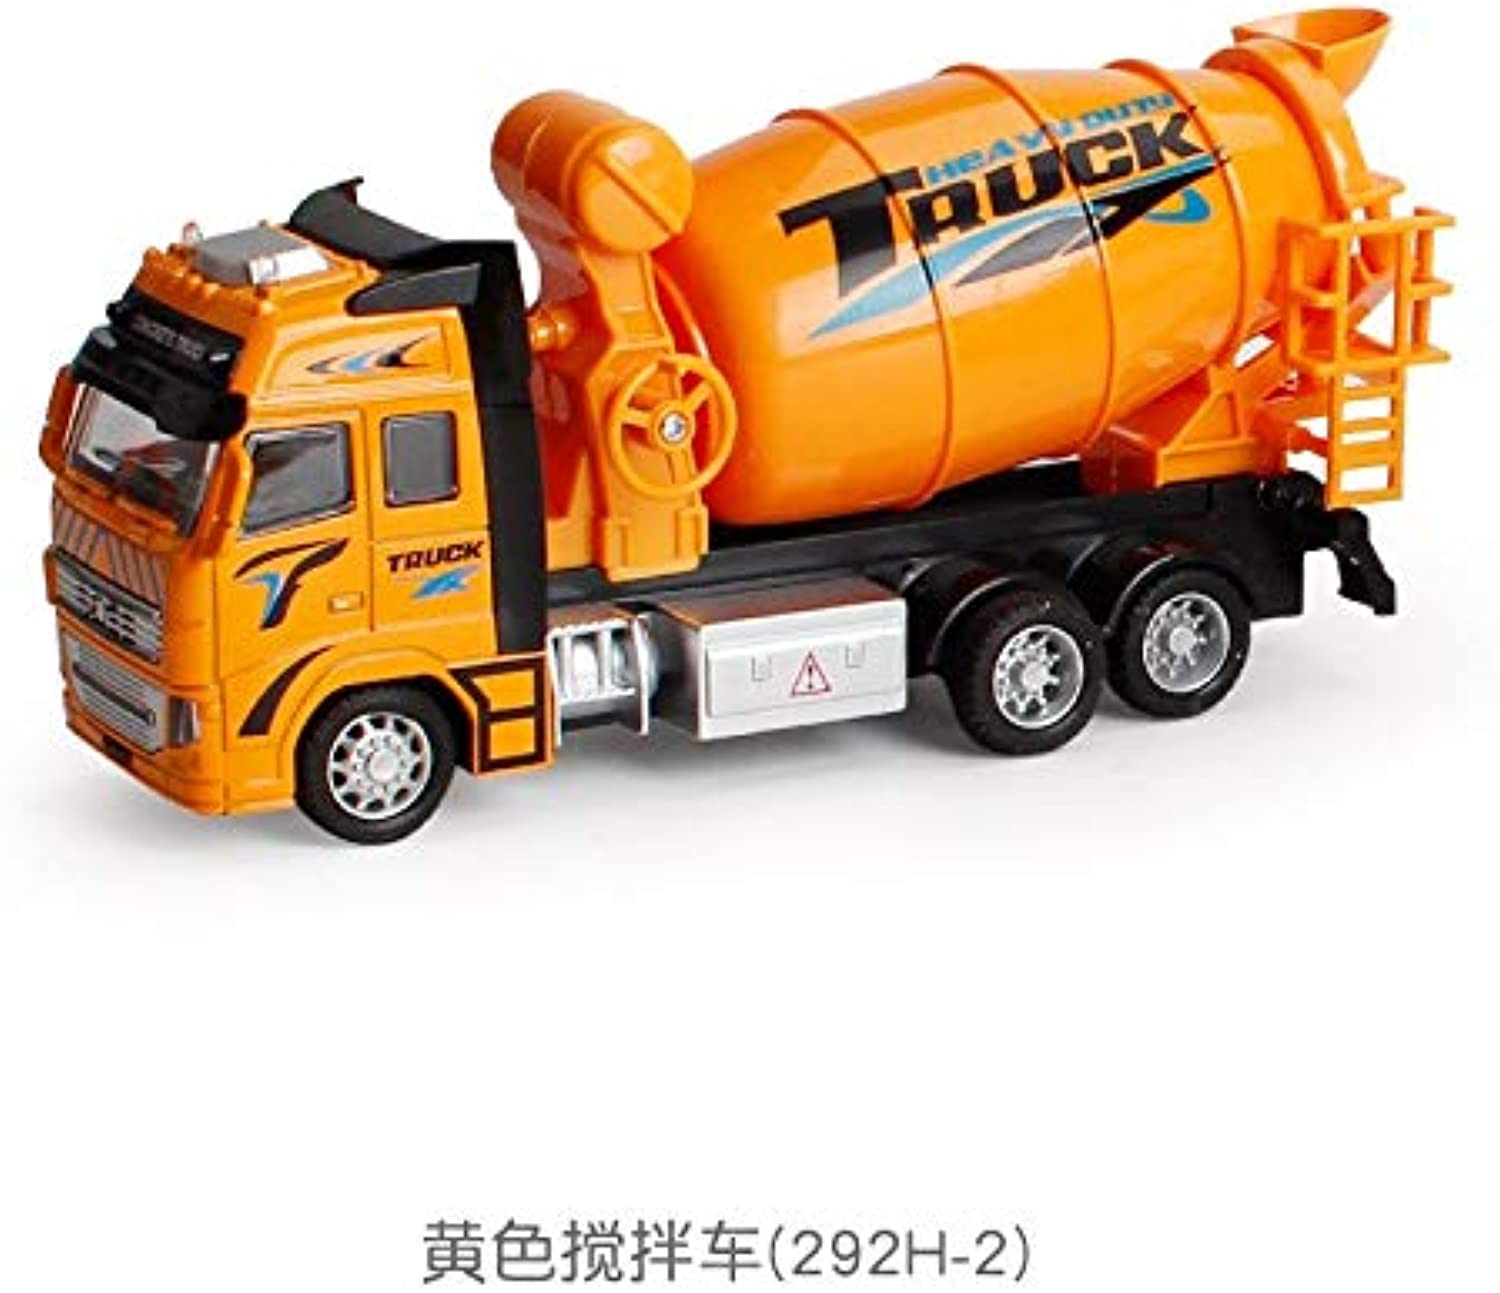 Generic 1 18 Toy Car Sliding Alloy Municipal Engineering Vehicle Model Fire Truck Car Model Excavator Garbage Truck Toy for Kids Gifts 2